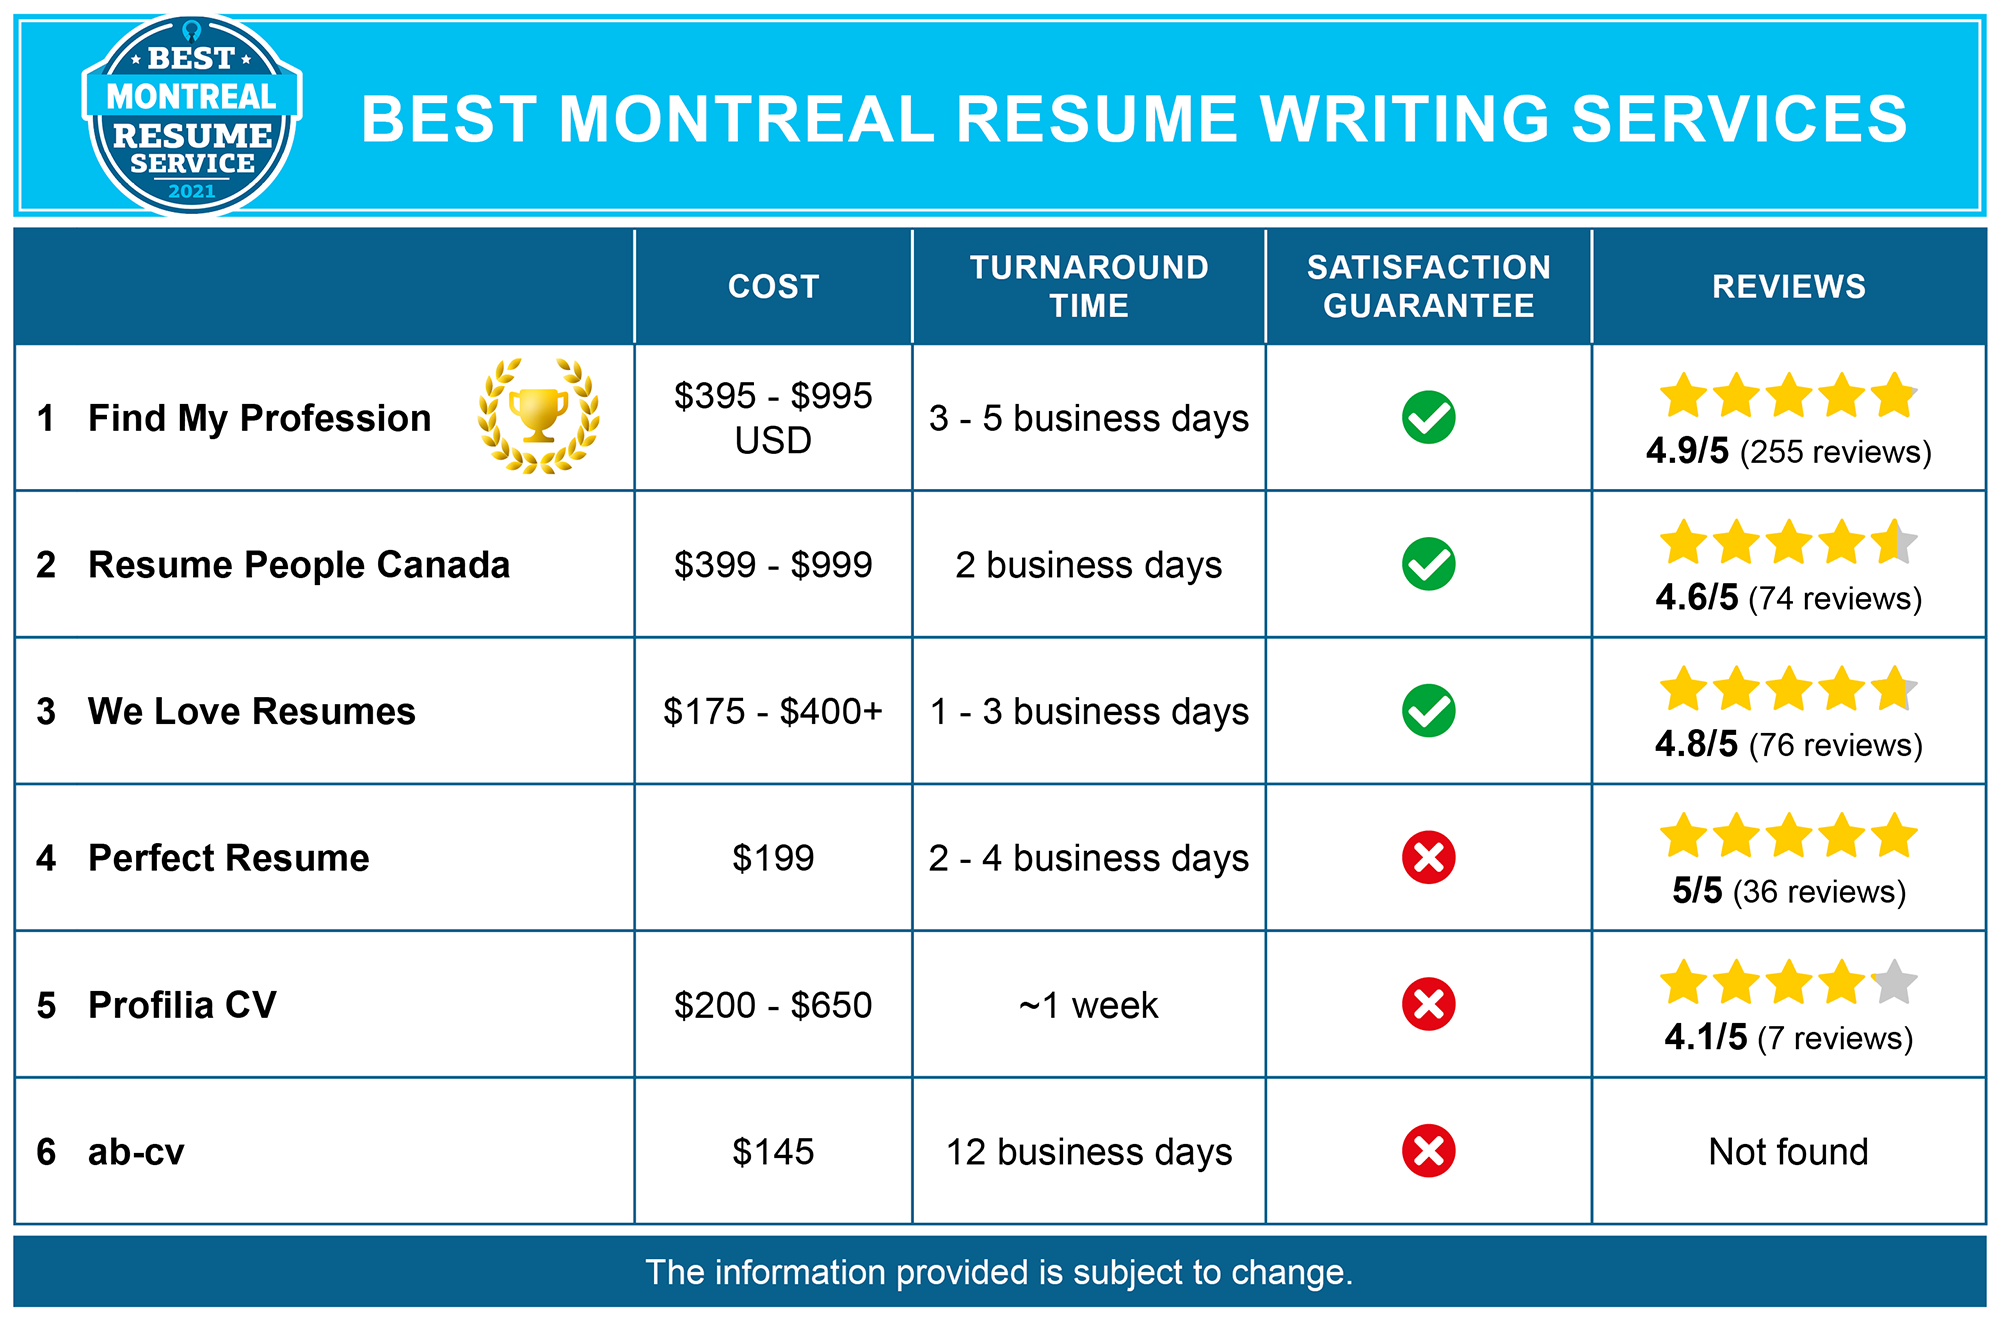 Best Montreal Resume Writing Services